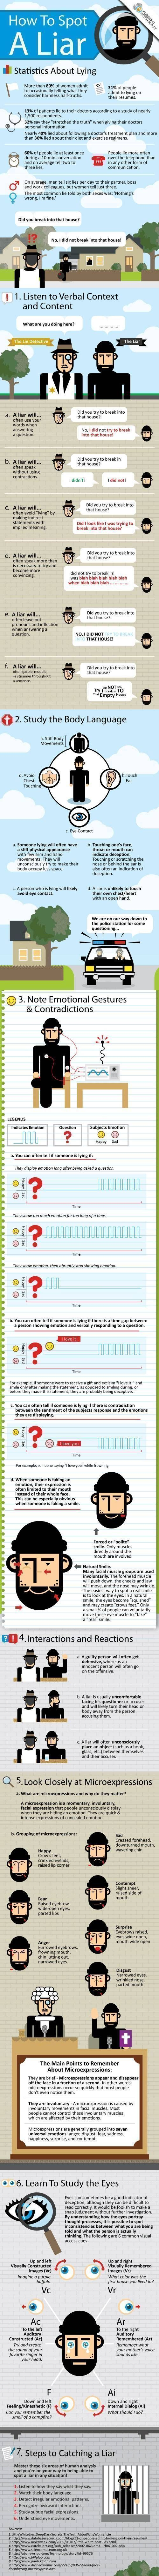 Psychology infographic and charts telltale-signs-someone-is-lying I am one to pay attention to body language and … Infographic Description telltale-signs-someone-is-lying I am one to pay attention to body language and I often know when Im being lied to…I just don't... - #Psychologyinfographics #signlanguageinfographic #signlanguagechart